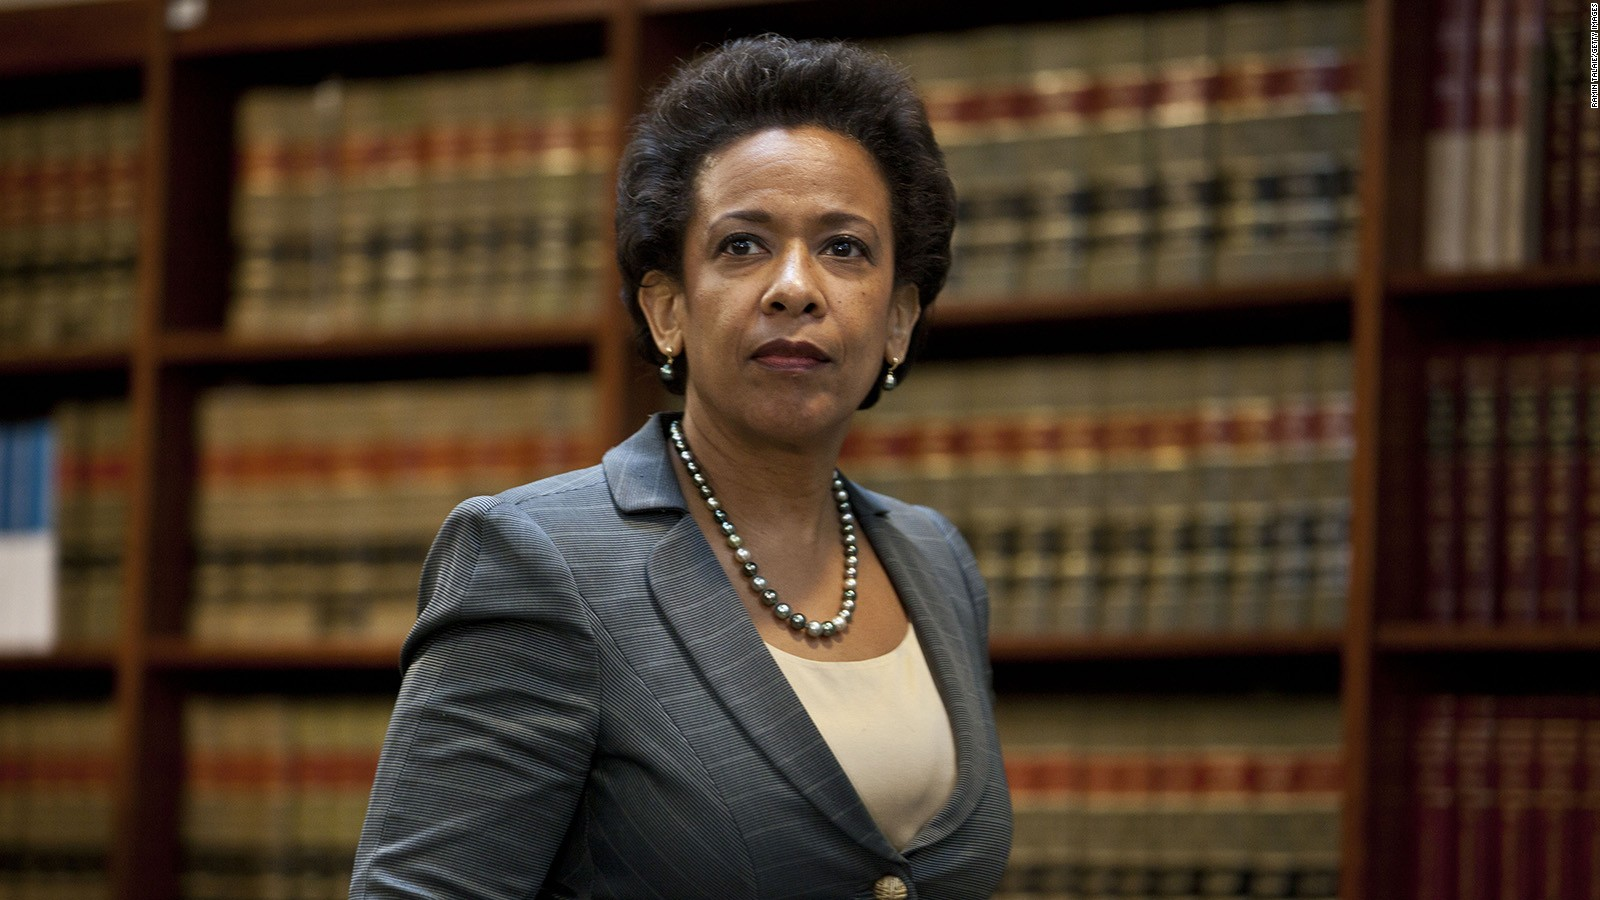 Loretta Lynch - First Black Woman to become the U.S. Attorney General